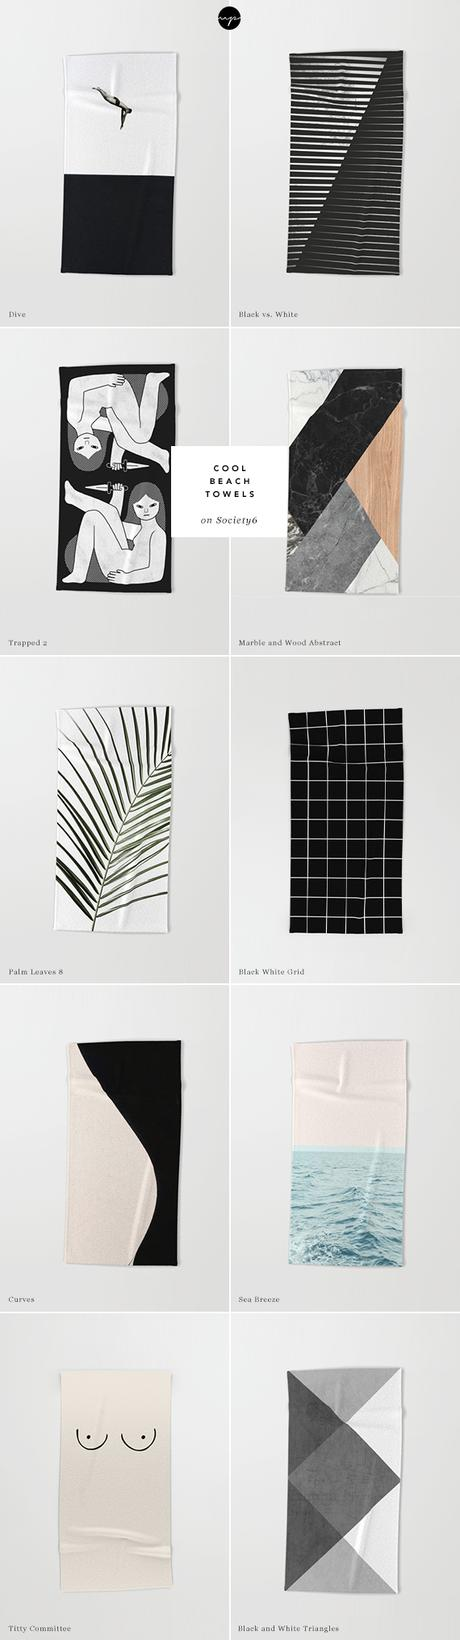 10 cool beach towels for the summer from Society6